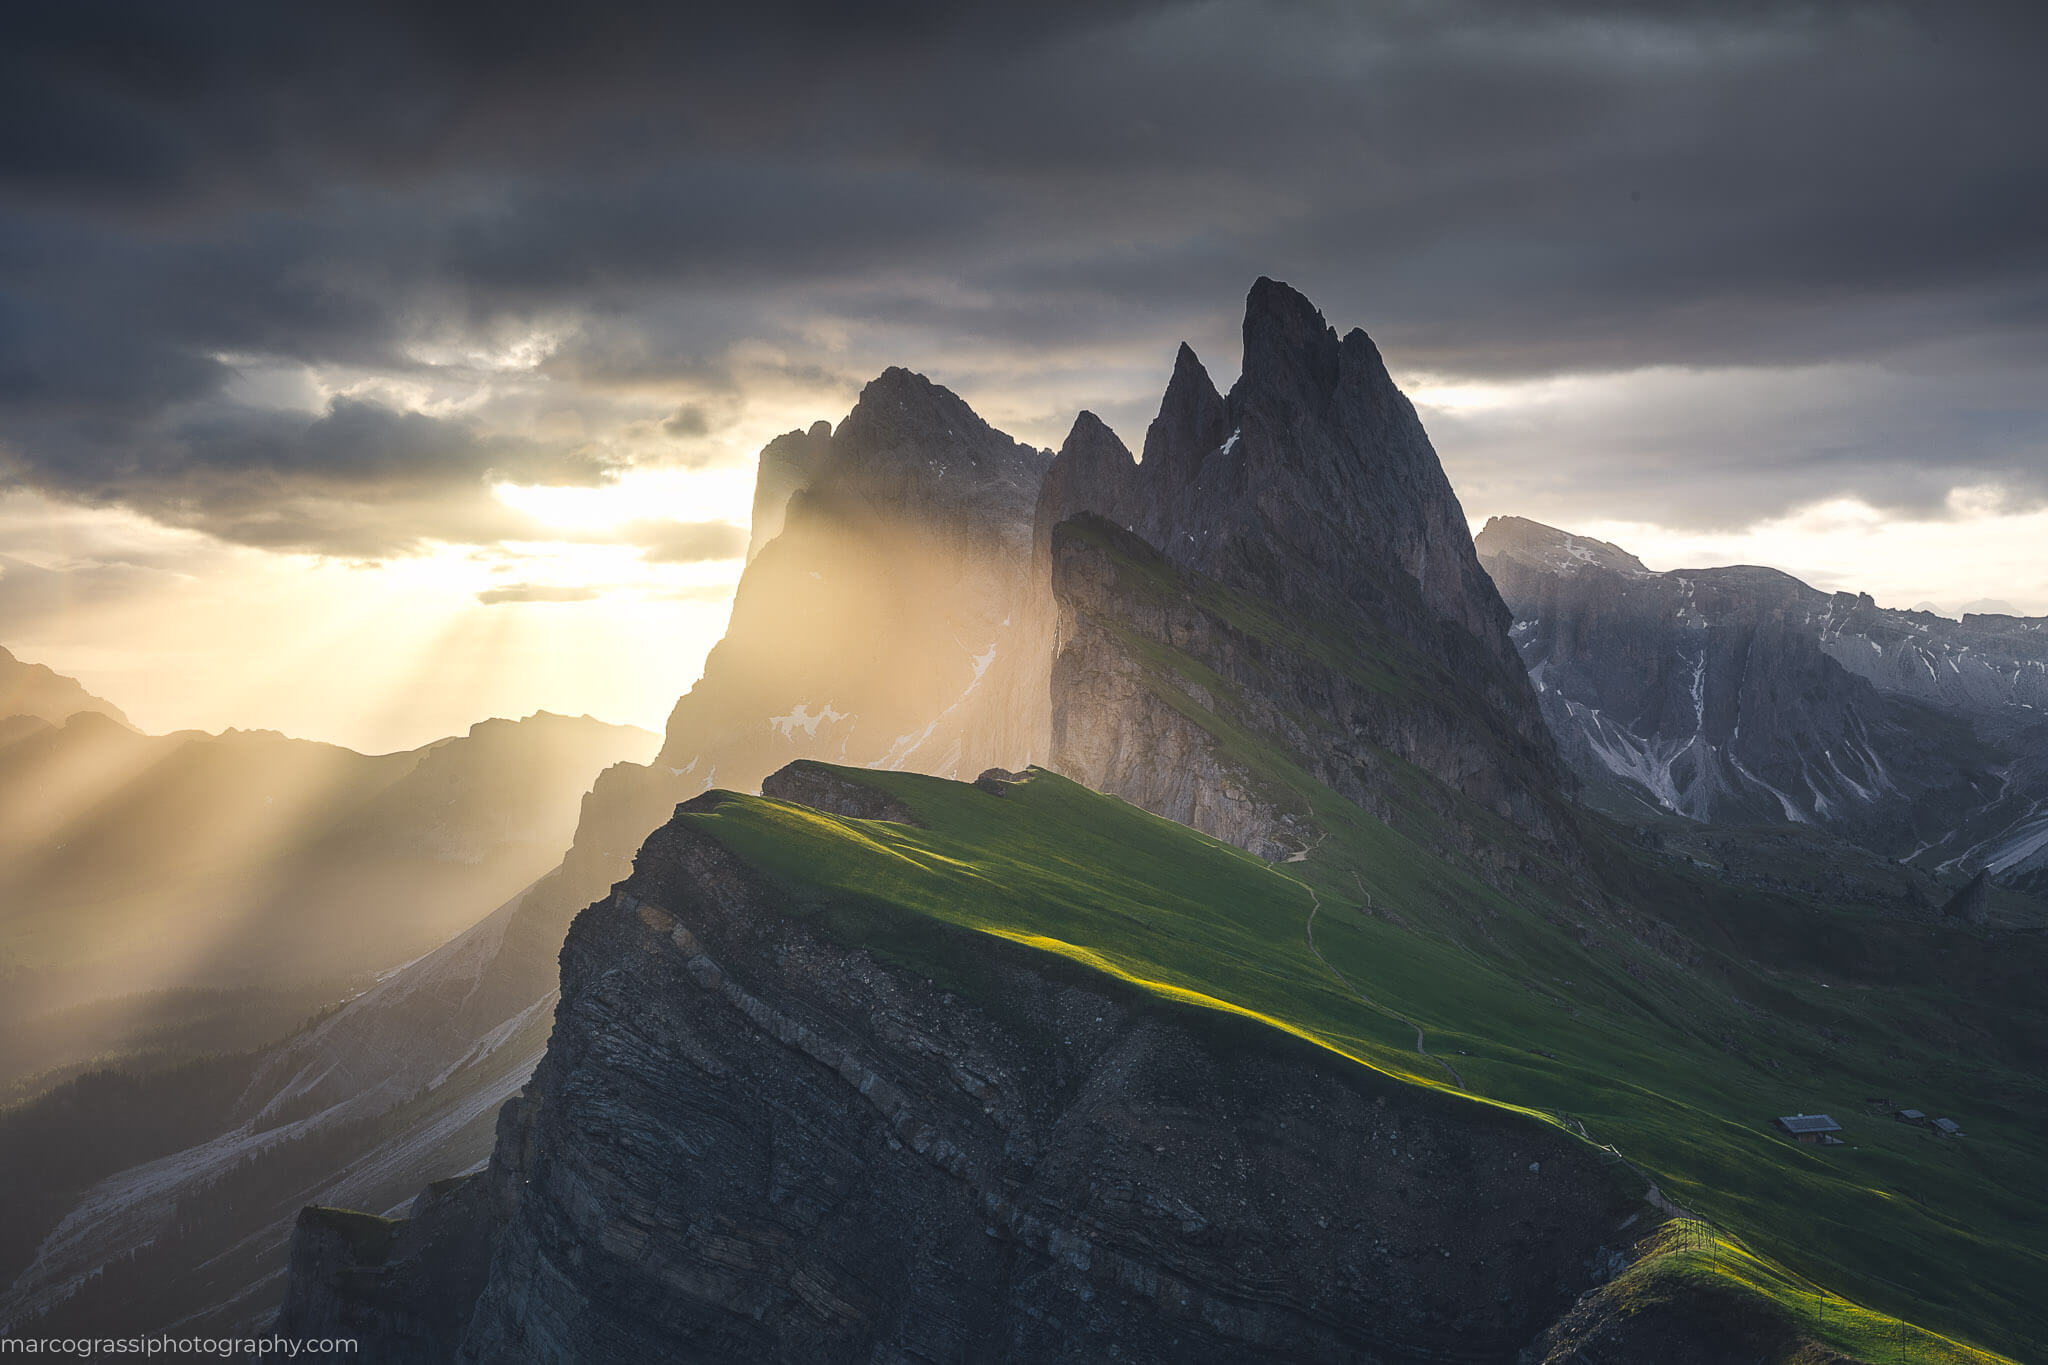 Light on Seceda in the Dolomites, Italy